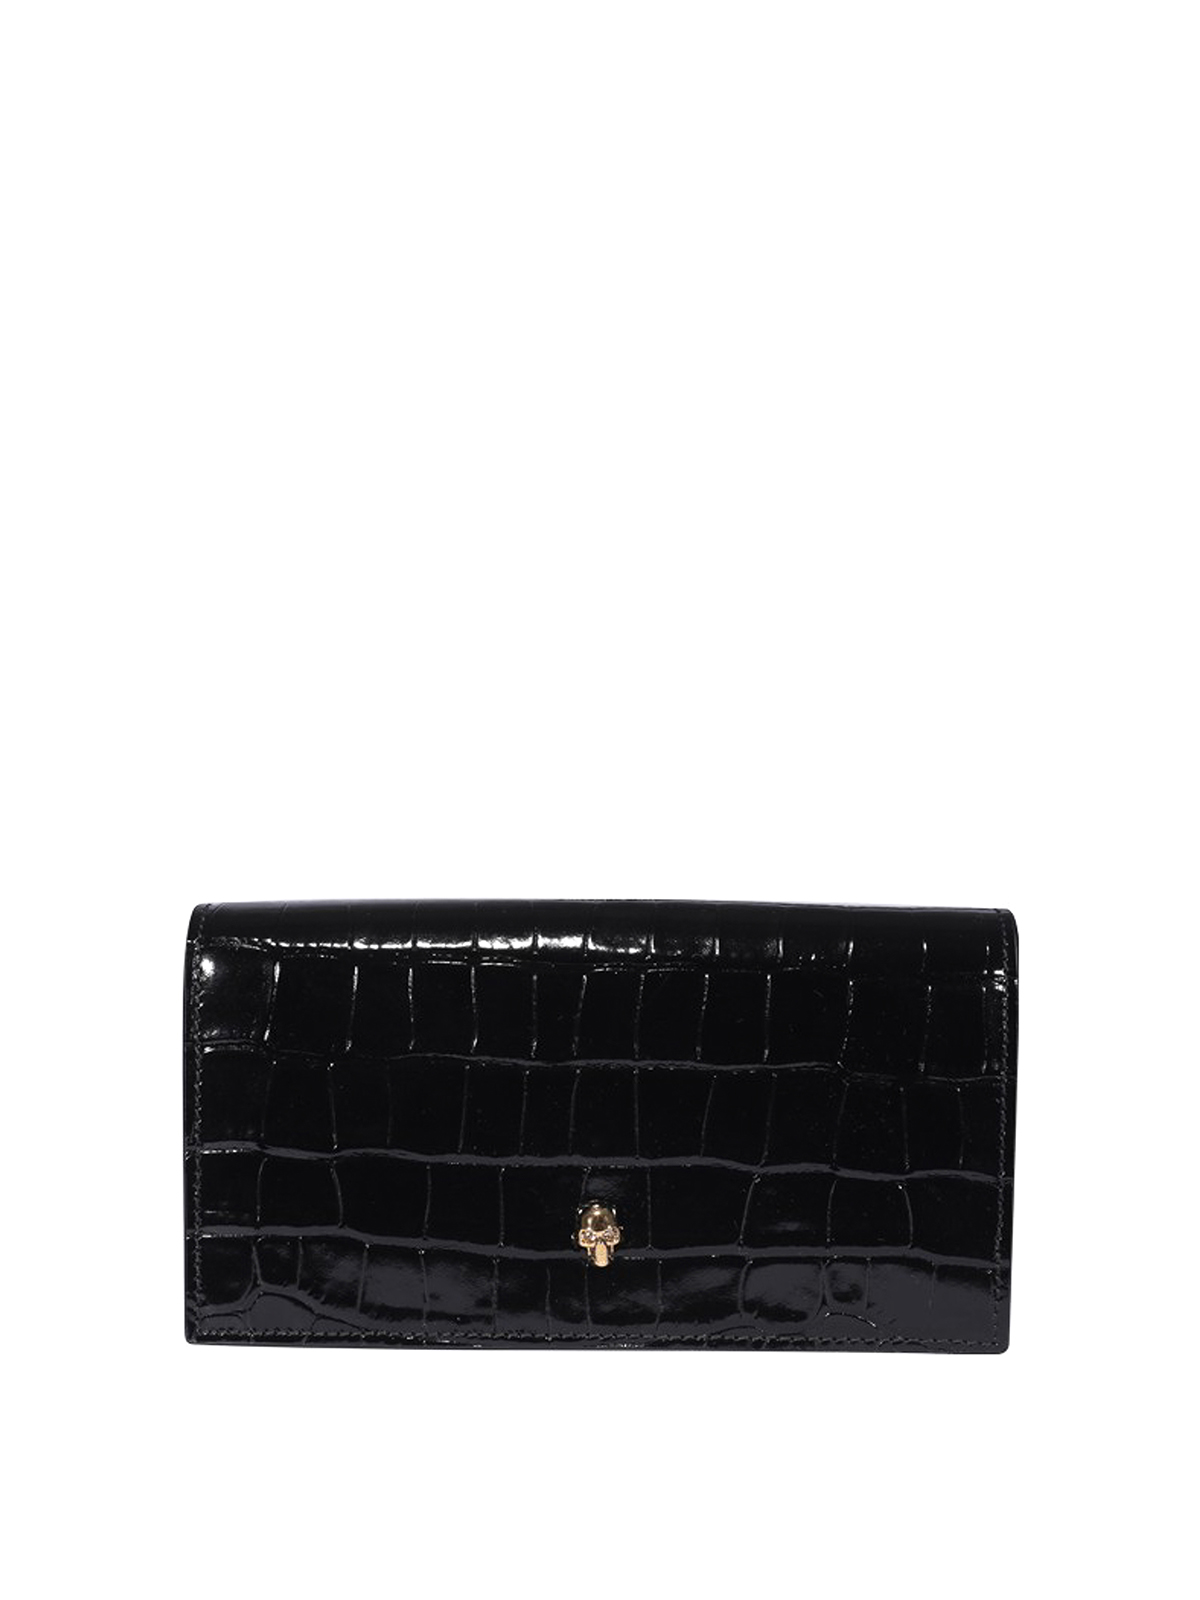 ALEXANDER MCQUEEN CROCO PRINT LEATHER WALLET